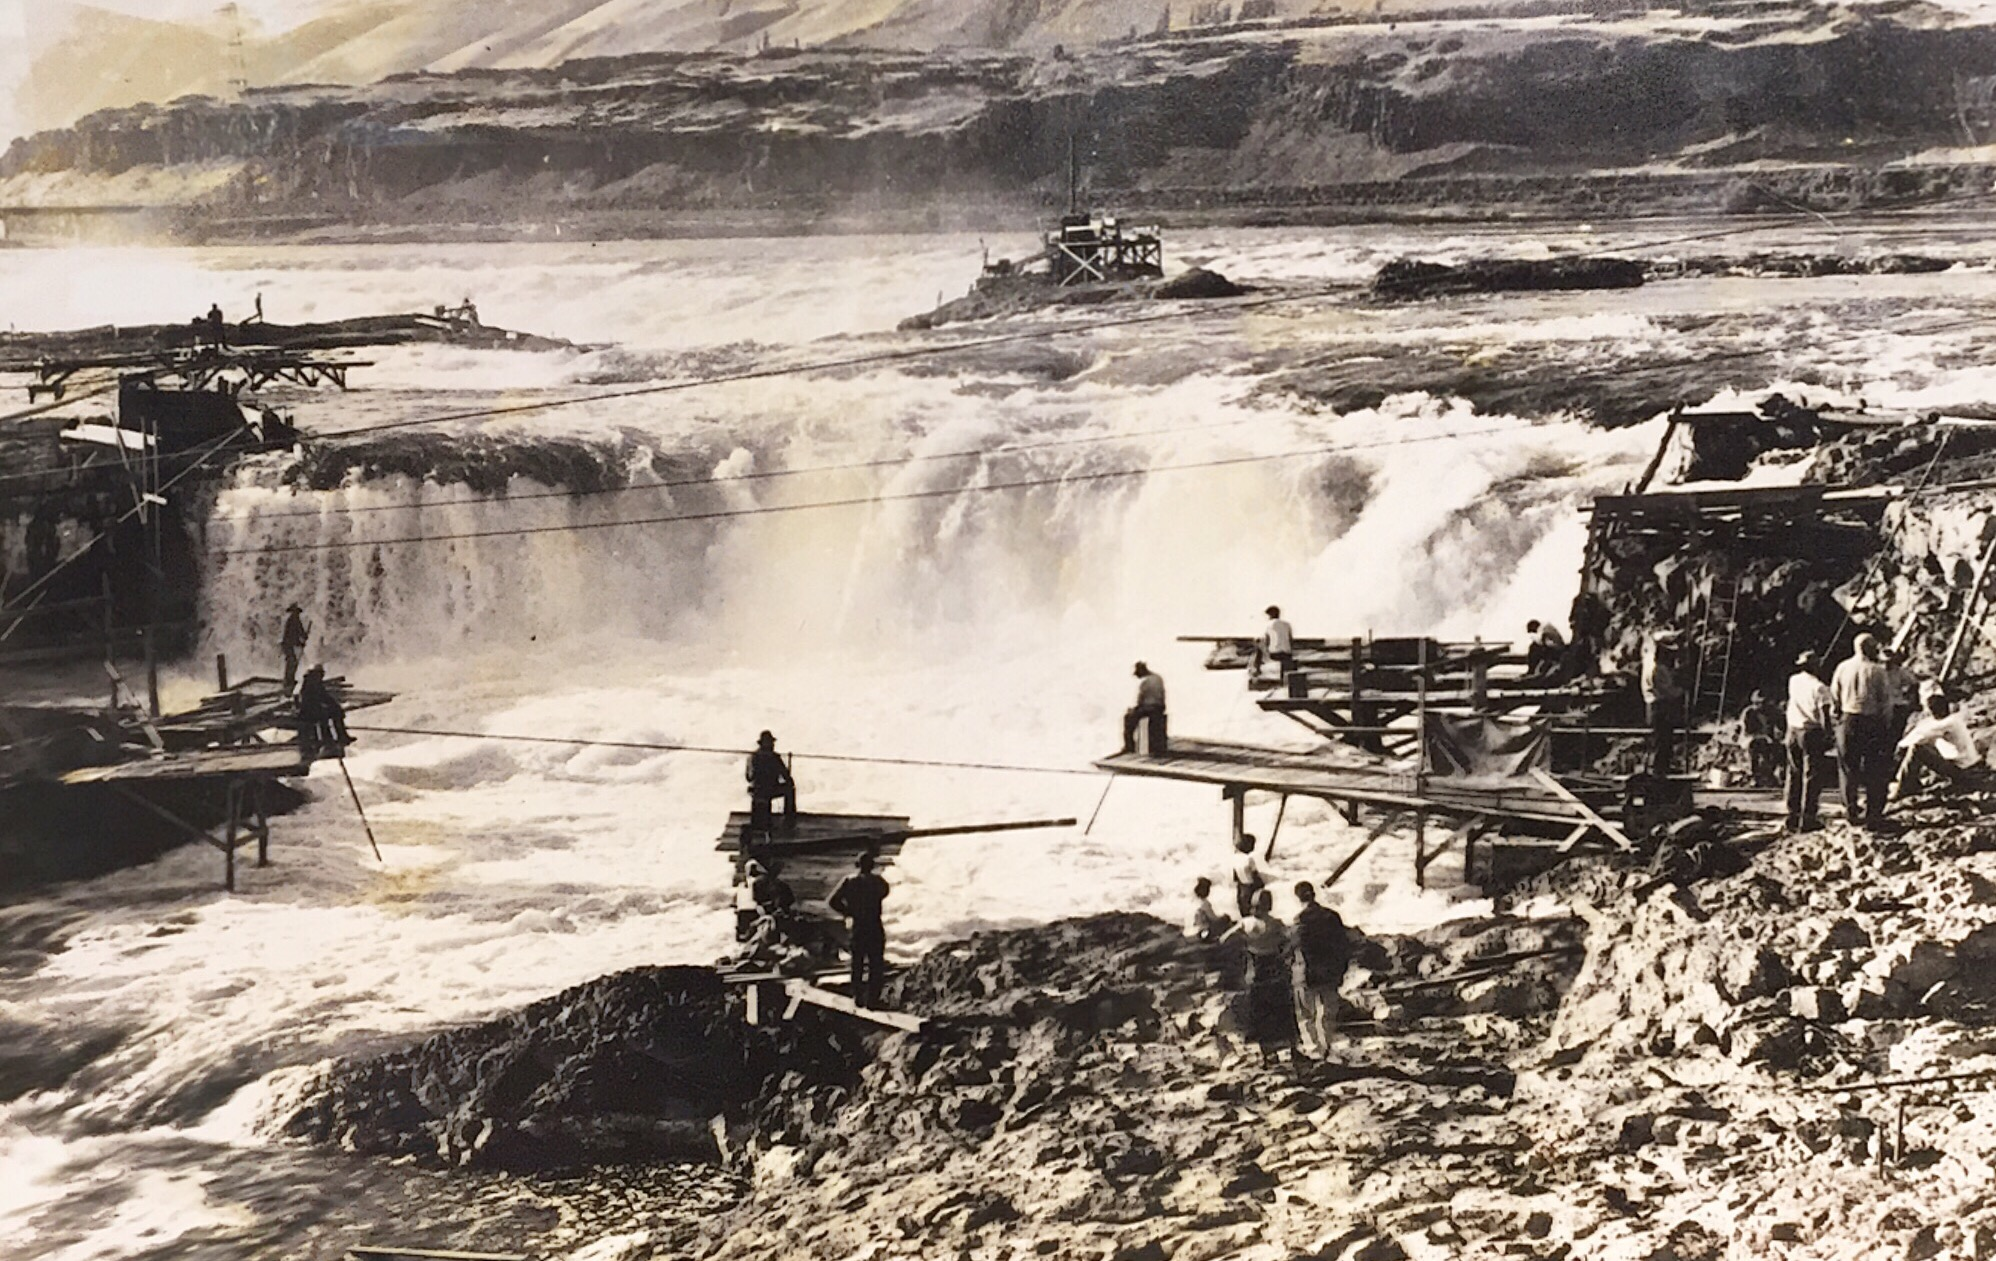 """This is a photo from the Washington State Historical archive that gives a great perspective on a Columbia River waterfall that was just a few miles down river from Maryhill Loops Road. This spot was called Wyam by First Nations peoples. Wyam meant """"echo of falling water"""" or """"sound of water upon the rocks"""". Later it became known as Celilo Falls. The area has known human habitation for 15,000 years. Until 1957, it was the oldest continually inhabited community on the North American continent. As the photo demonstrates, the reason for this was that it was an ideal, if not challenging, place to catch salmon. The tribes would build scaffolds out over the rapids from which to spear and net salmon as they moved up over the falls. There are some great videos on Youtube showing the falls and the people working them. The roar of the water was said to have been heard over a mile away.  It is hard to overstate how important these falls were to the native peoples who gathered and lived here. Not only as a food source but also as a melting pot for the different cultures that came. The river, as wide as one mile in places, choked down to just 140 feet wide at the falls. In the twelve subsequent miles below Celilo, the river dropped 82 feet. This section of narrows was referred to as the Dalles. Celilo Falls was sixth largest in the world by volume. It is estimated that 15 to 20 million salmon passed over the falls every year. The area also served as a crossroads between two major cultures. From the Northwest came people who spoke Chinookian languages and from further east came those who spoke Sahaptian languages. Both pulling in trade goods from as far afield as the Great Plains, Alaska and the American Southwest. Near the falls, there were two major villages. On the north bank lived the Wishram people and the south bank was populated by the Wasco. The most intense trading apparently occurred at Nix-Luidix, the Wishram village on the north bank. It has been called the Wall Street """